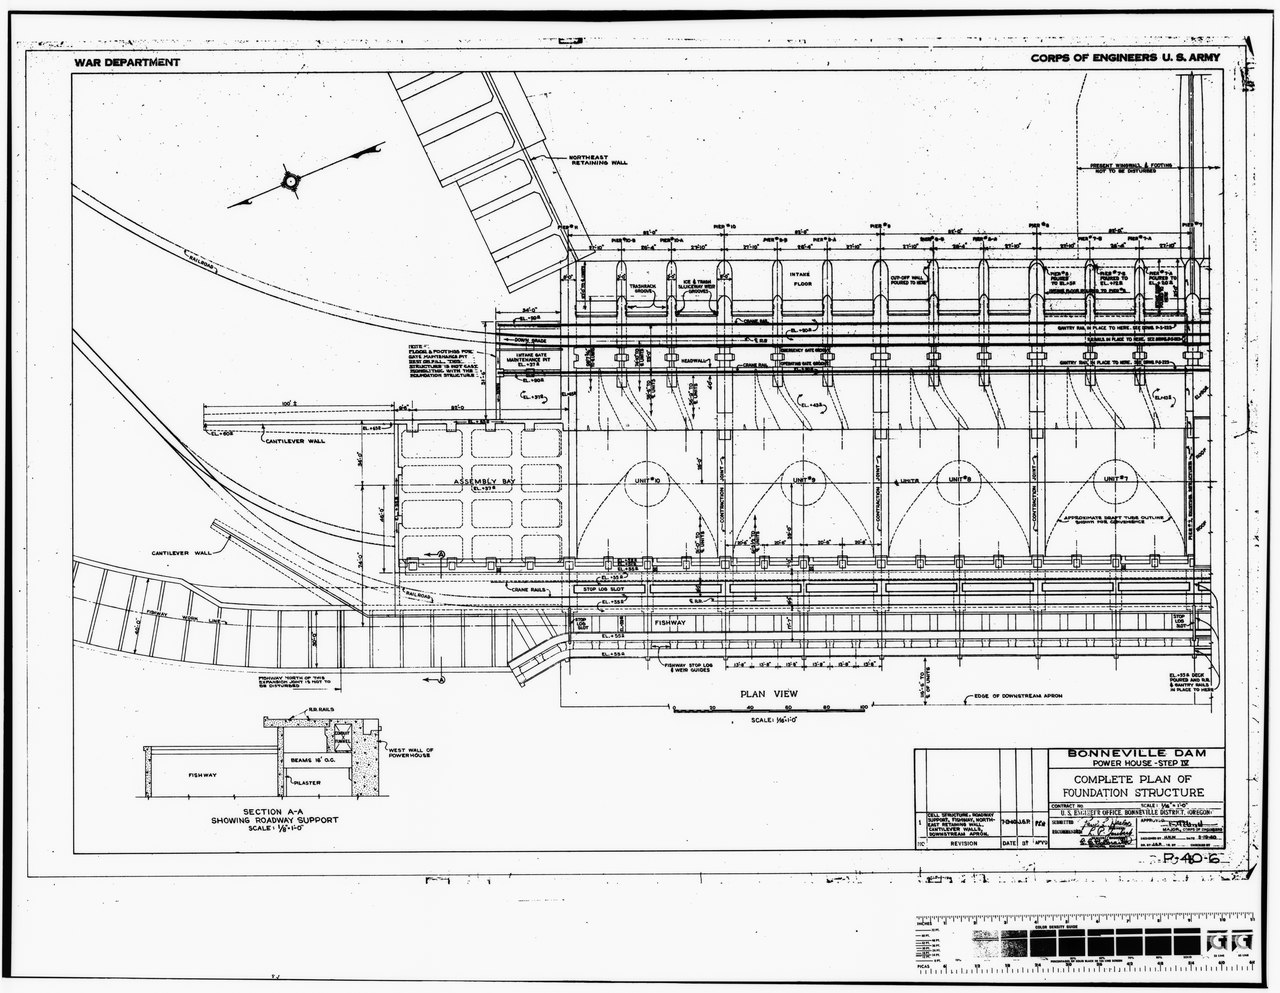 File Photocopy Of Original Construction Drawing Dated 19